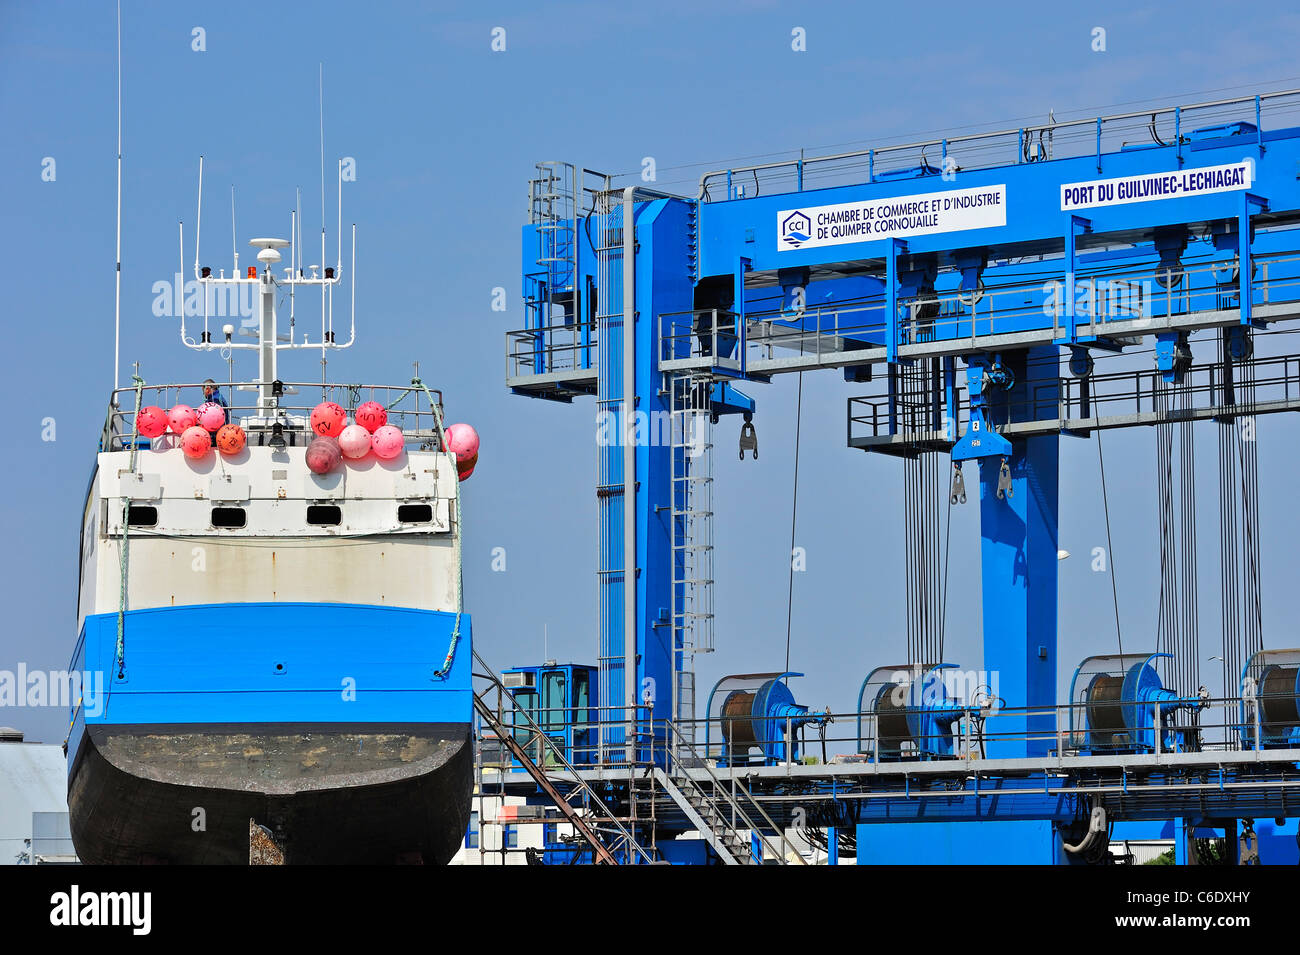 Blue trawler fishing boat on shipbuilding yard for maintenance works in the Guilvinec port, Brittany, France - Stock Image